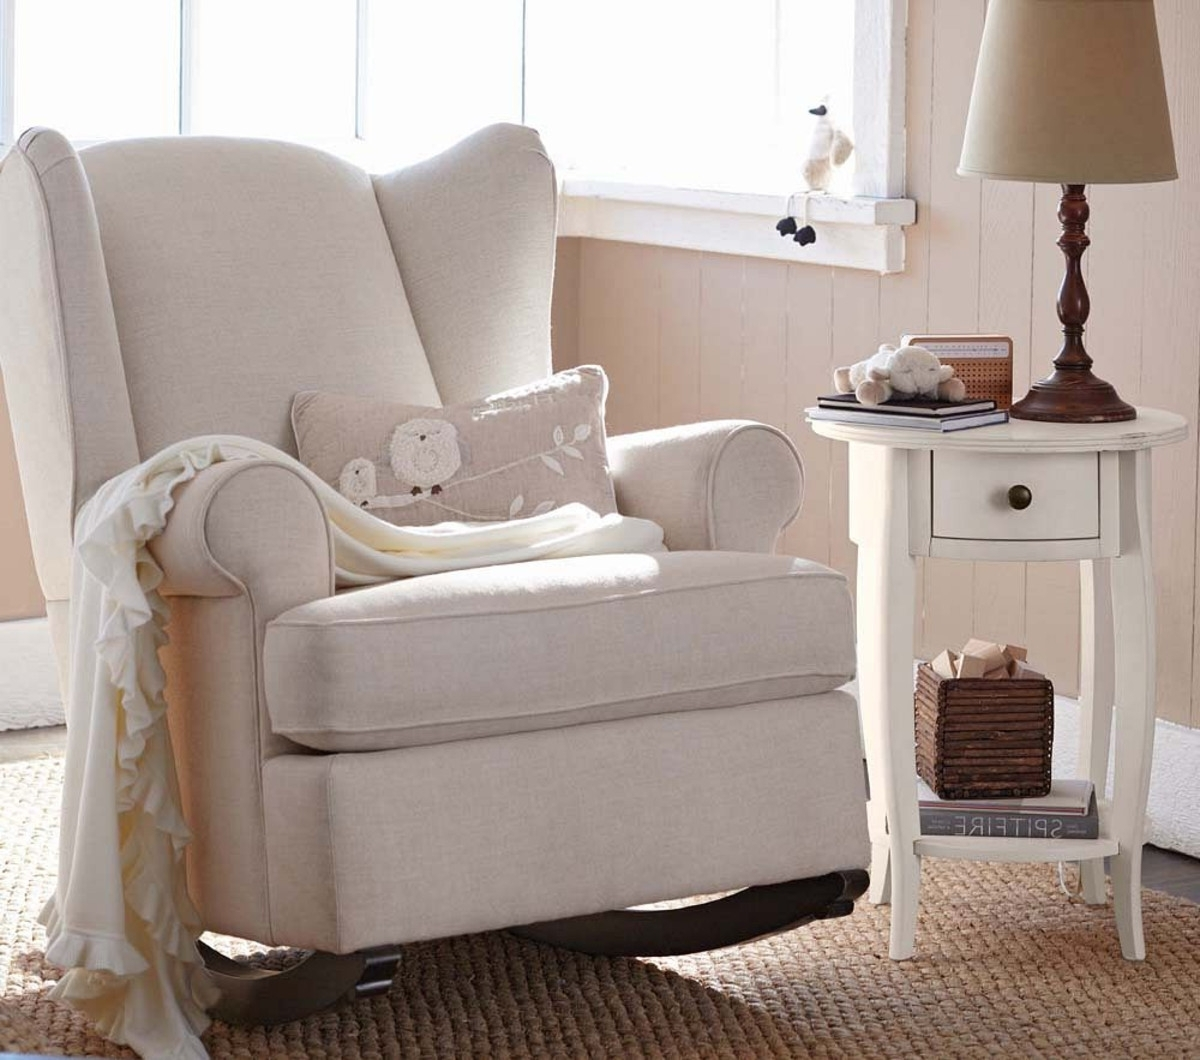 Ideal Modern Rocking Chair Nursery — Indoor & Outdoor Decor In Most Current Rocking Chairs For Nursery (View 6 of 20)